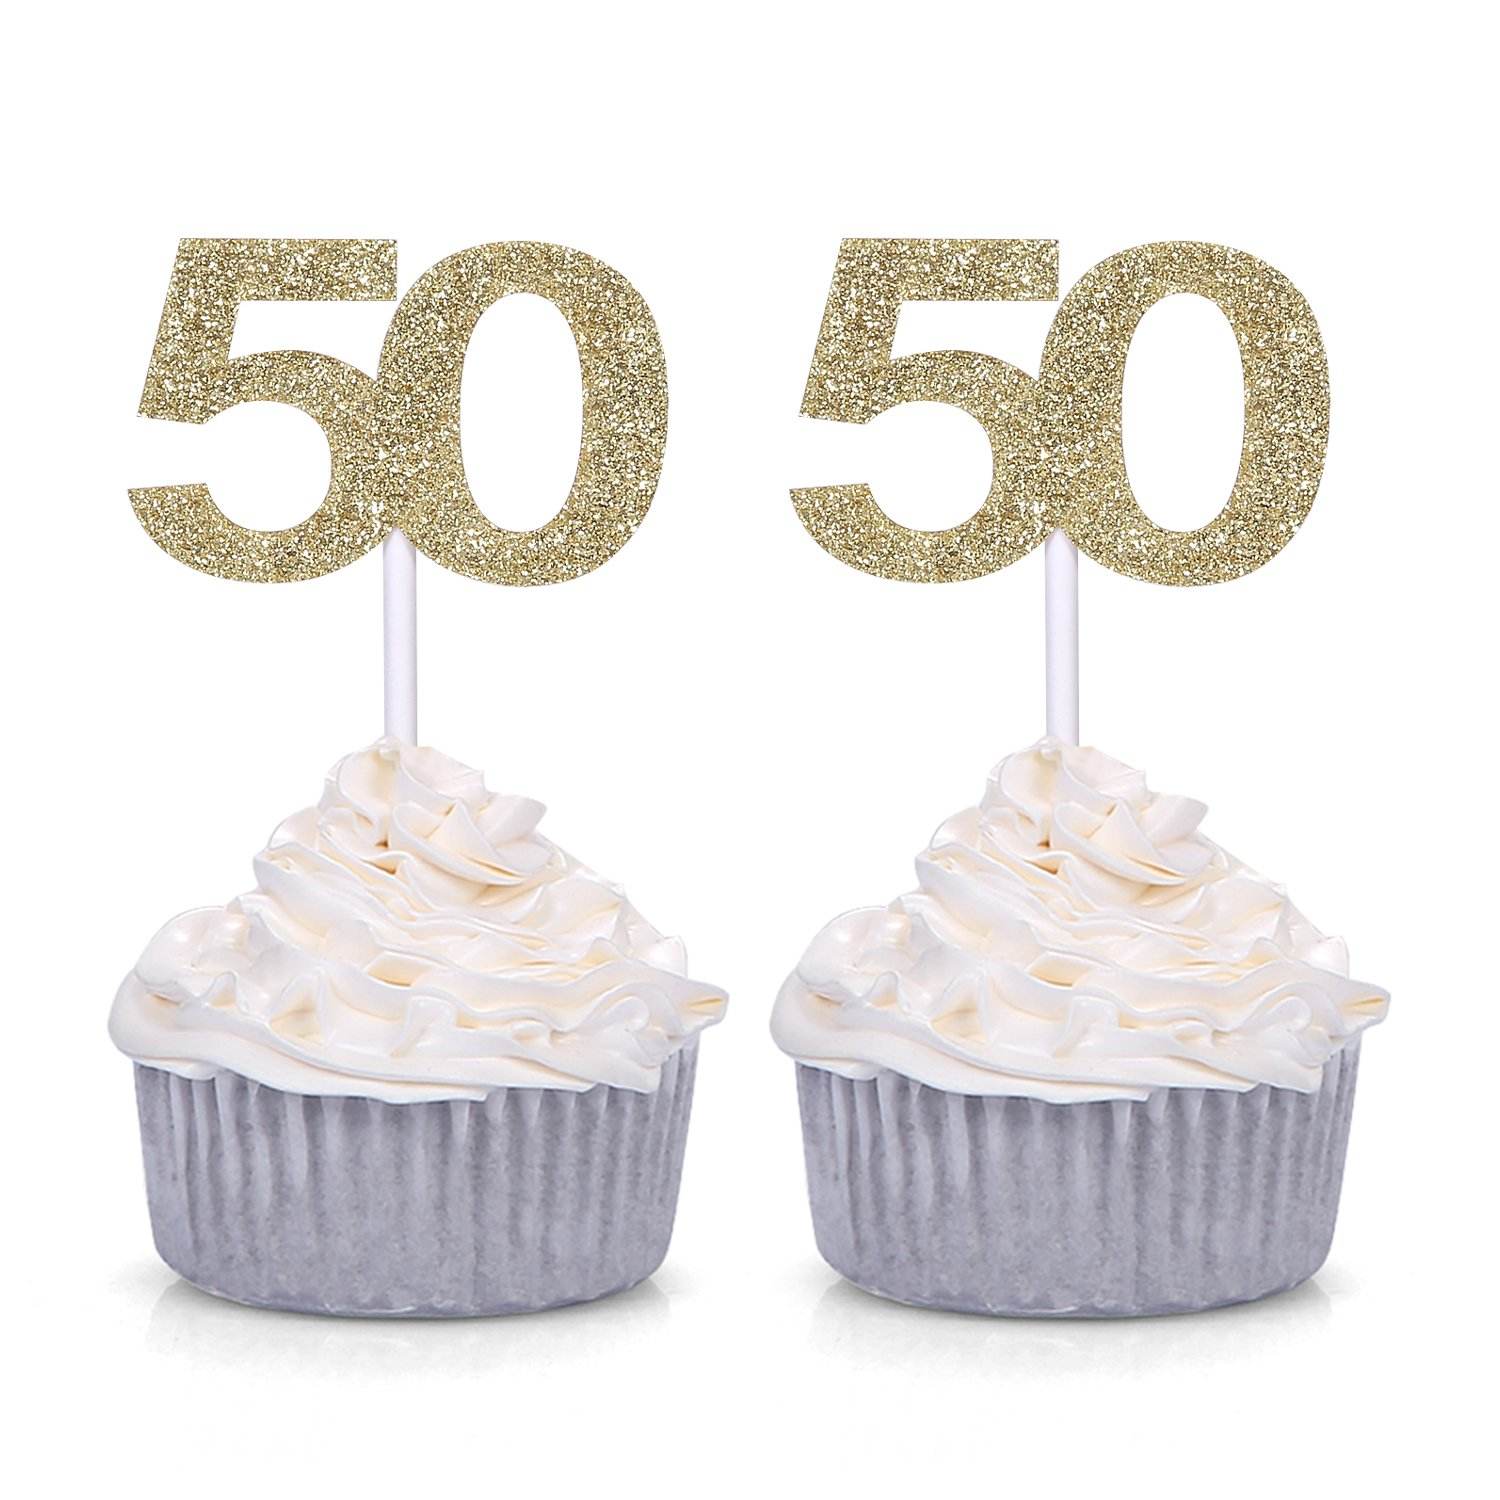 Details About Giuffi Set Of 24 Golden Number 50 Cupcake Toppers 50th Birthday Celebrating